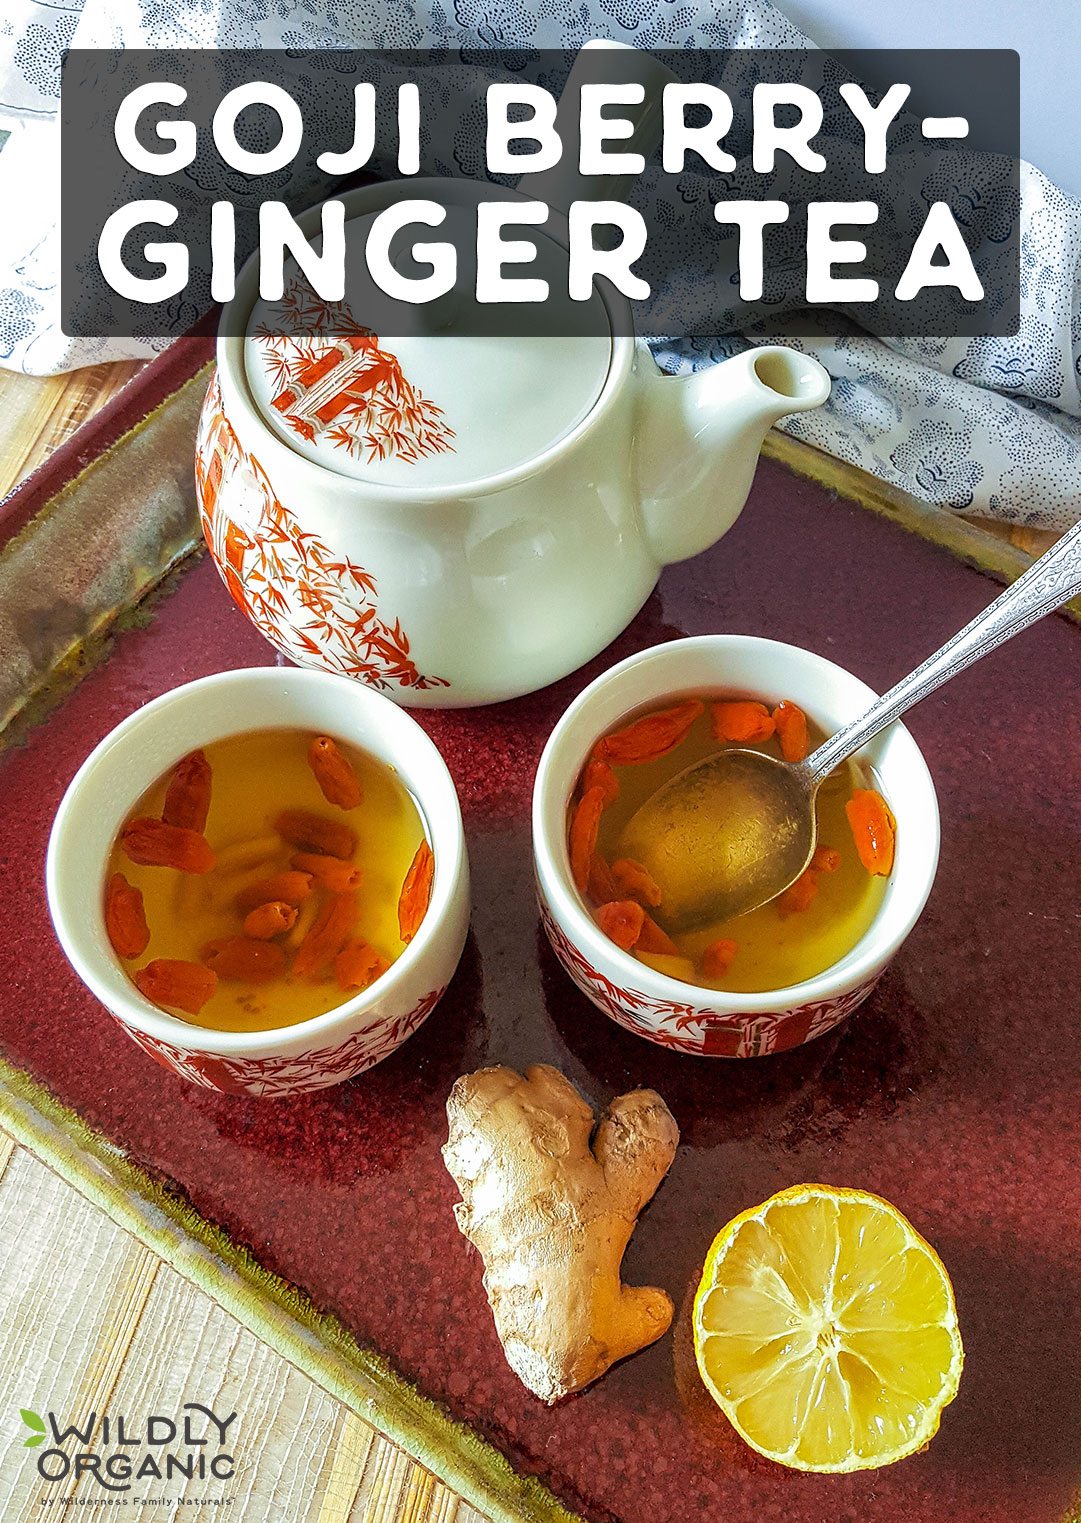 Goji Berry Ginger Tea